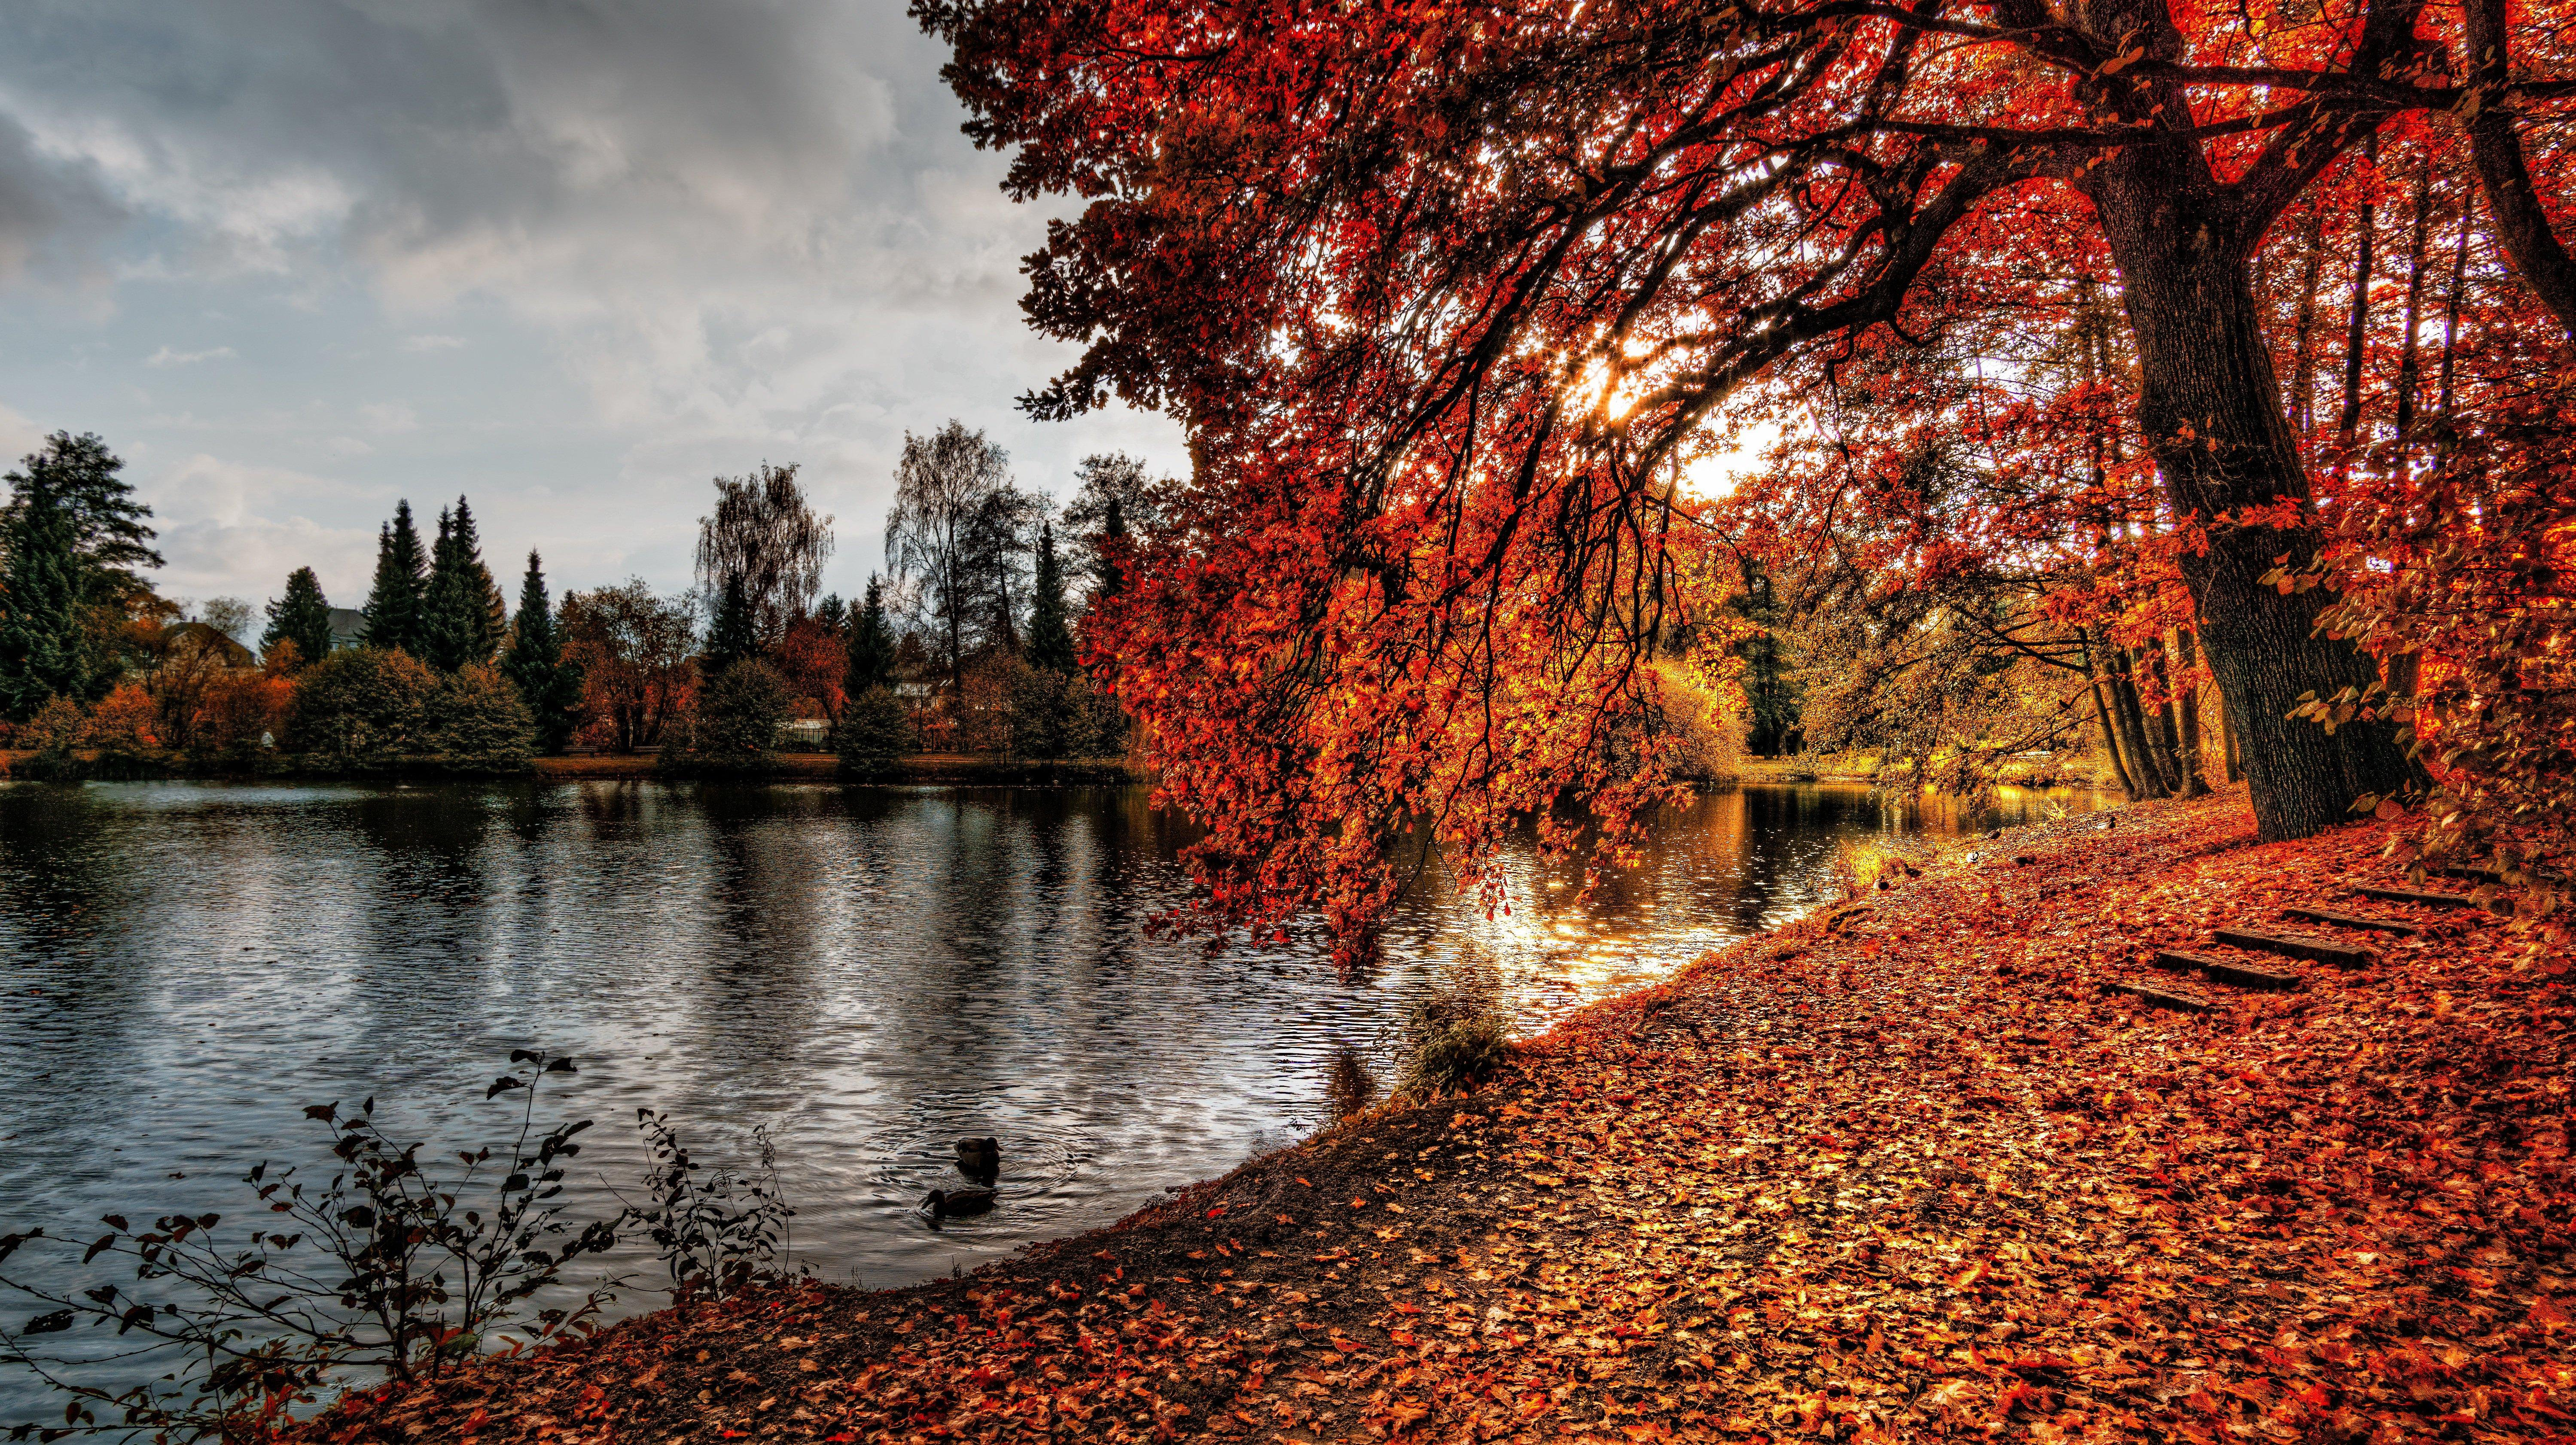 Hello Autumn Leaves Fall Seasons Wallpaper For Phone Nature Hd 1902281 Hd Wallpaper Backgrounds Download